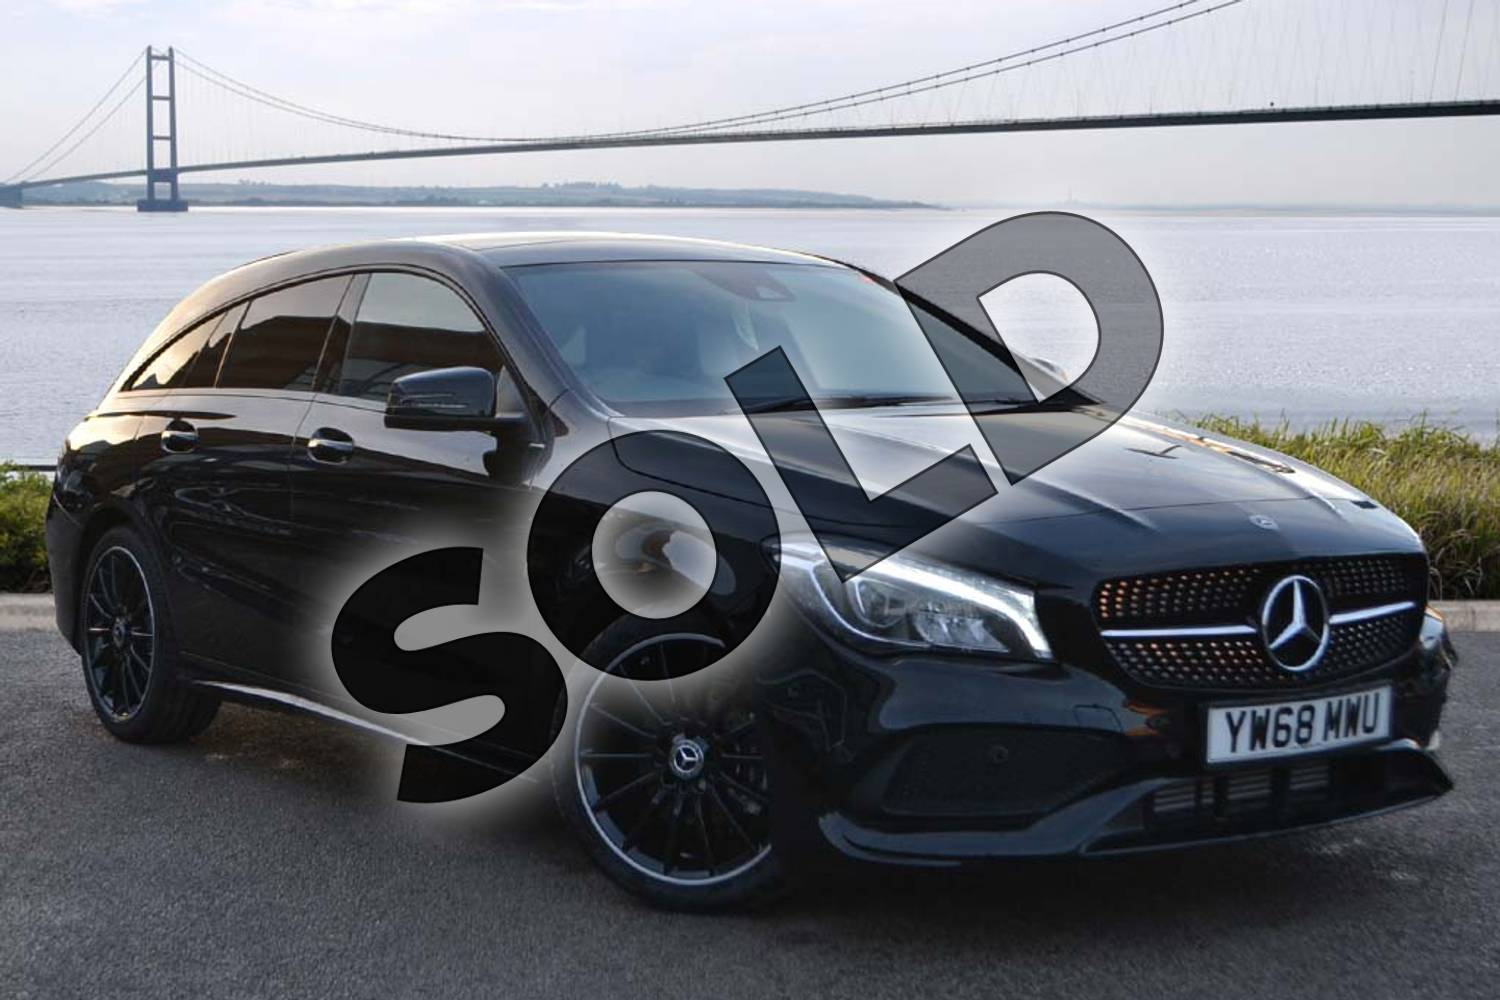 2019 Mercedes-Benz CLA Class Shooting Brake CLA 200 AMG Line Night Edition Plus 5dr Tip Auto in Cosmos Black Metallic at Mercedes-Benz of Hull